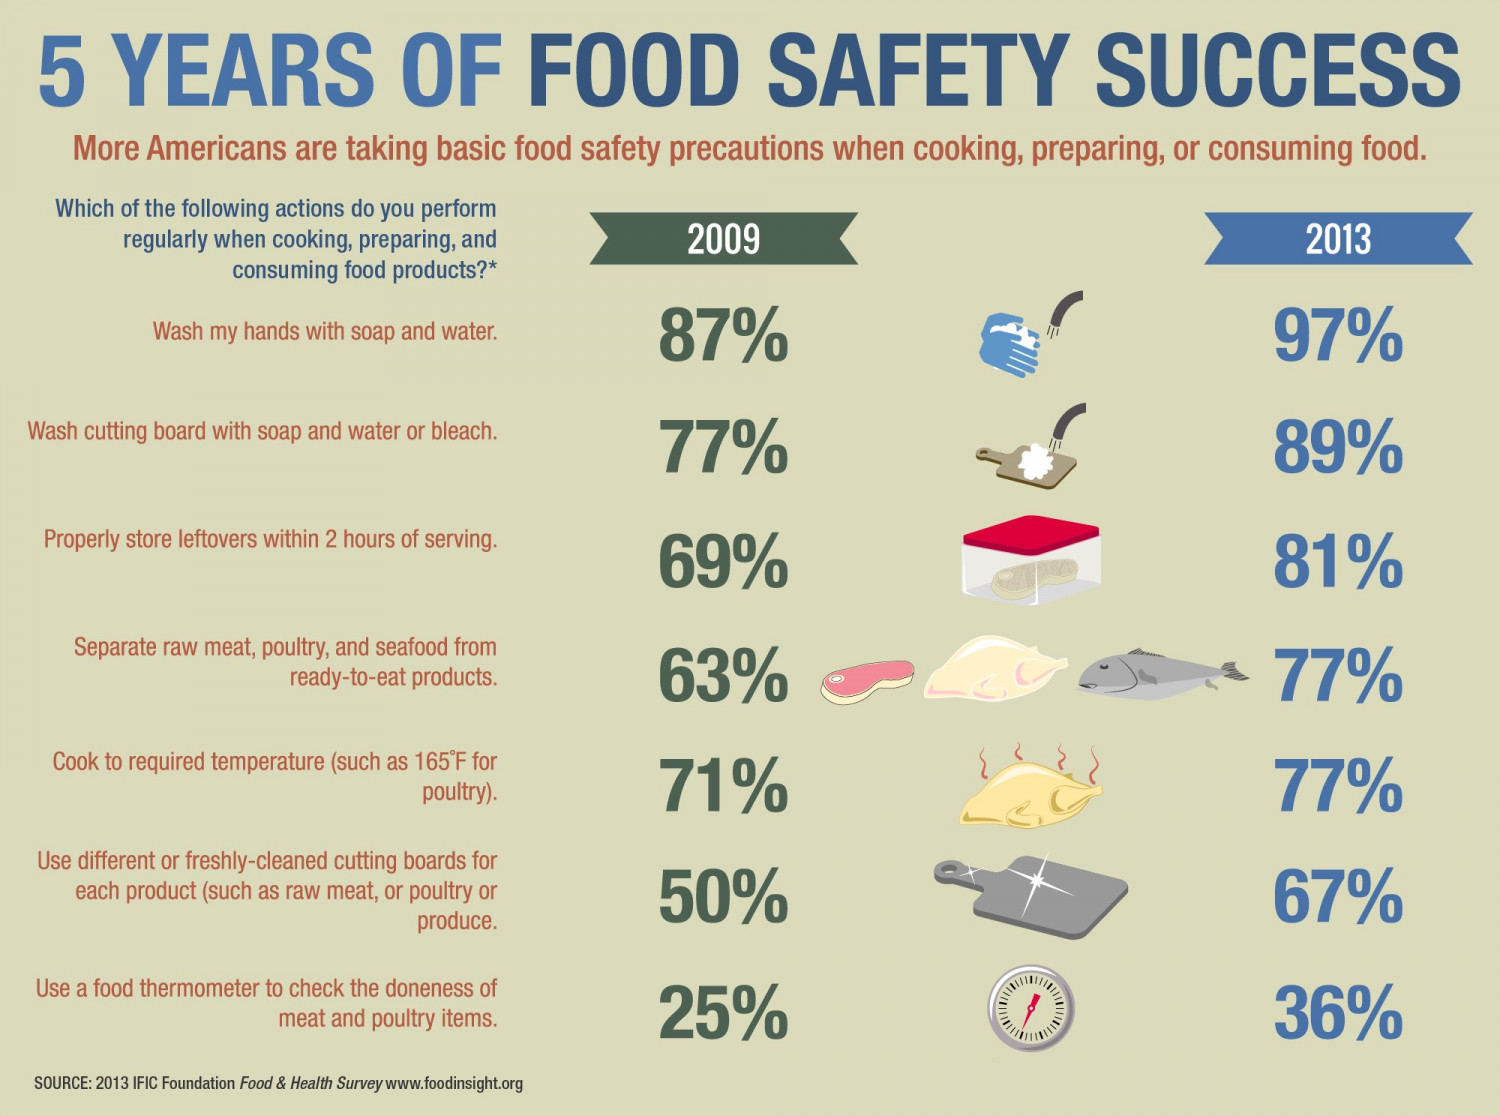 5 Years of Food Safety Success Infographic